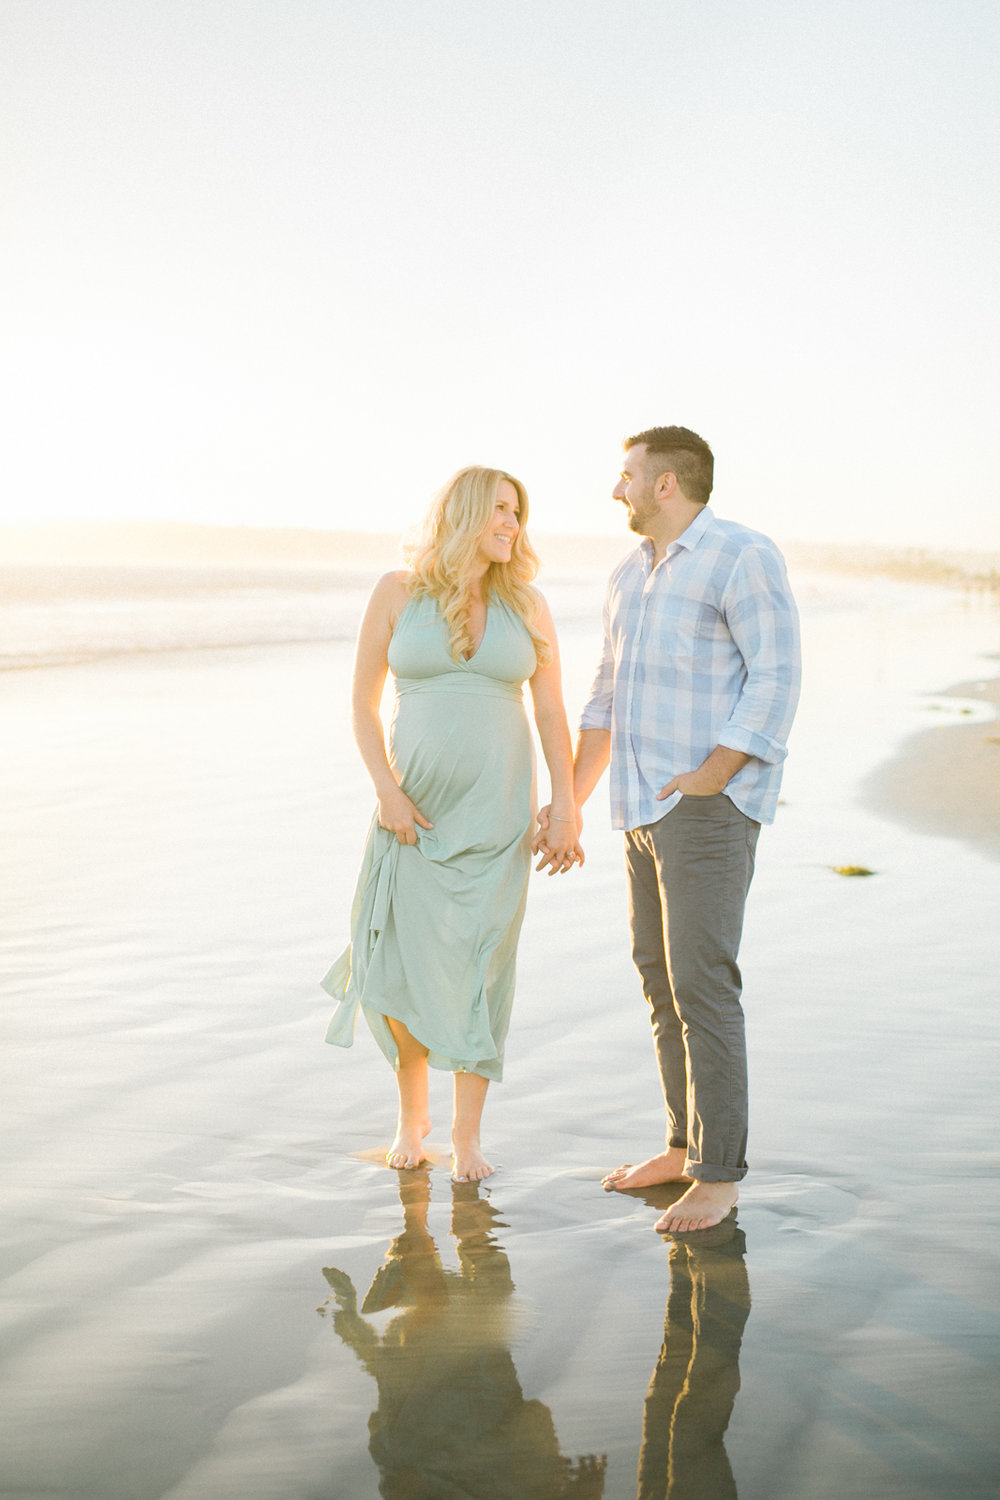 coronado-maternity-photos-12.jpg